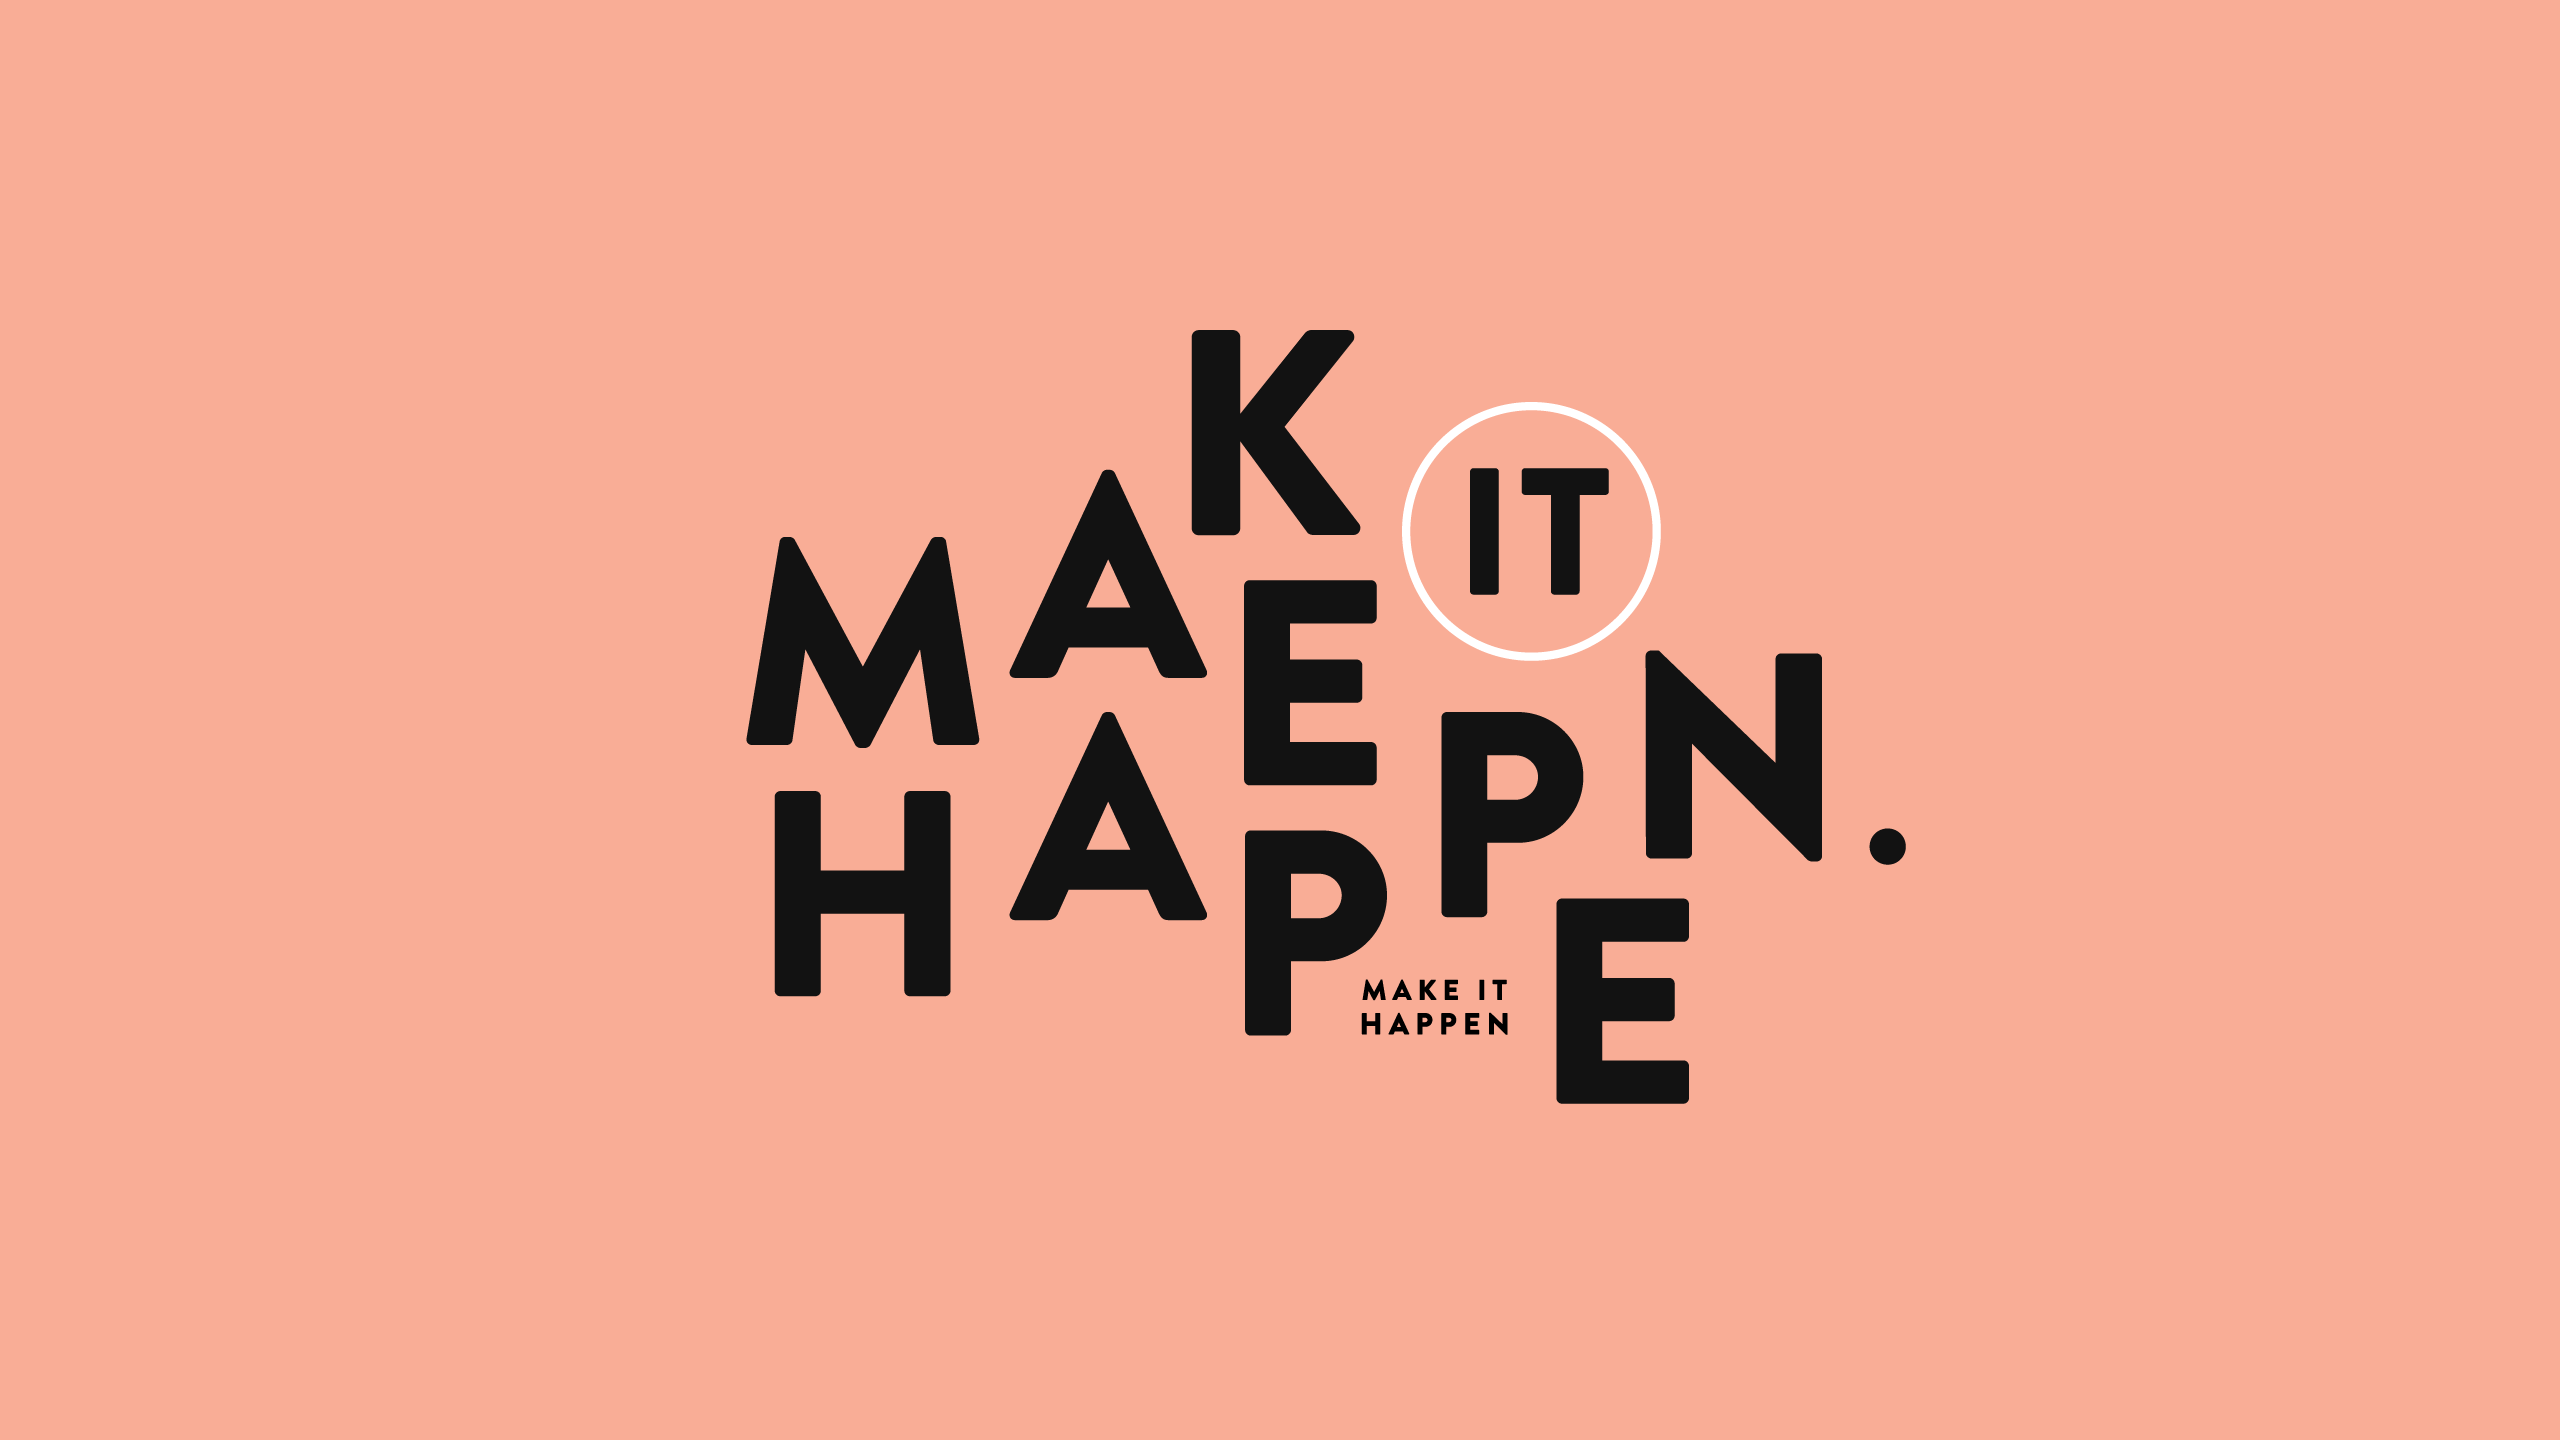 Make it happen wallpaper Wallpaper Experts 2560x1440